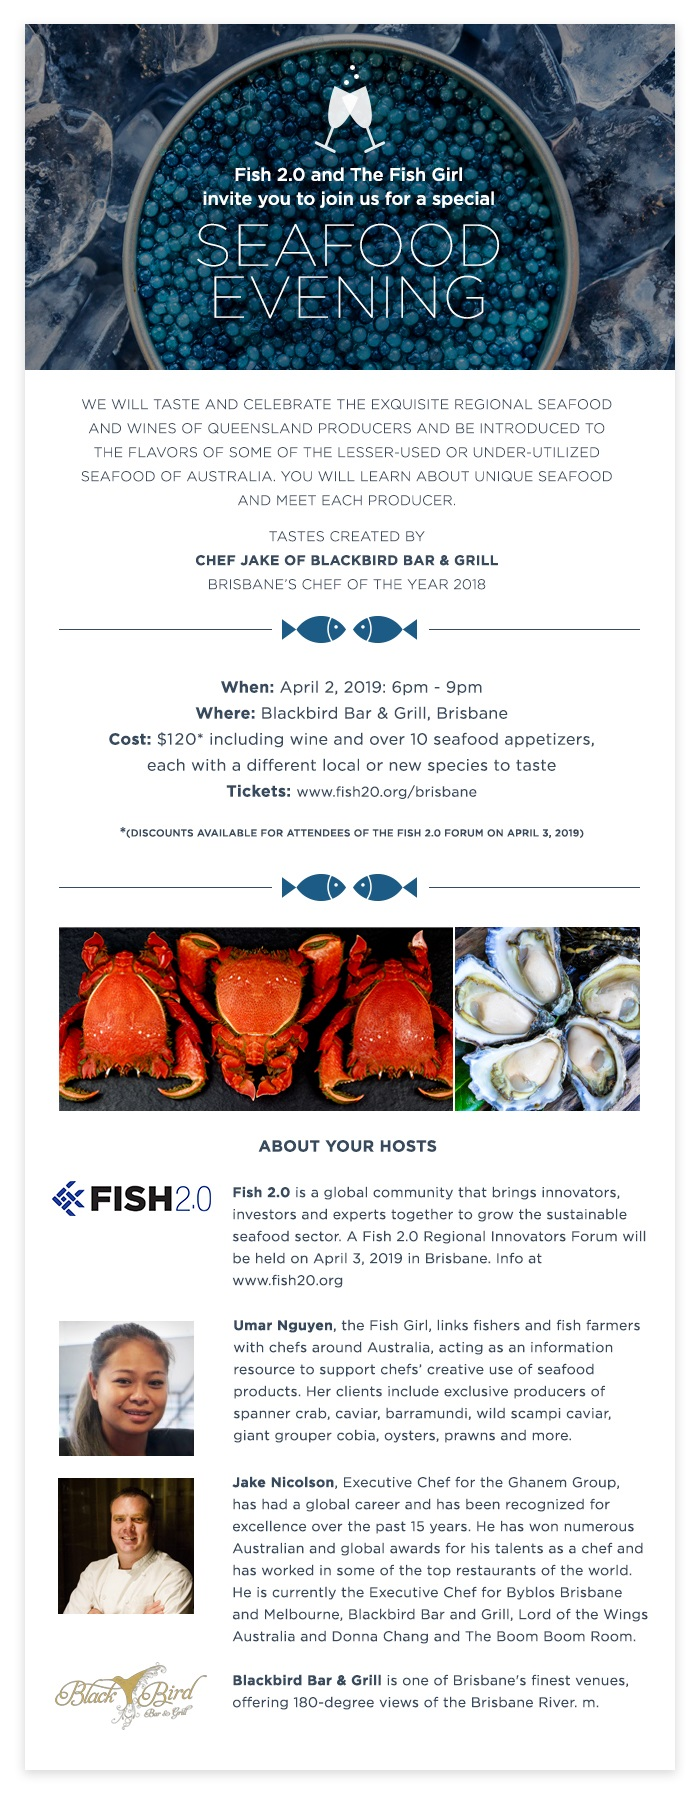 Details of the Seafood Dinner